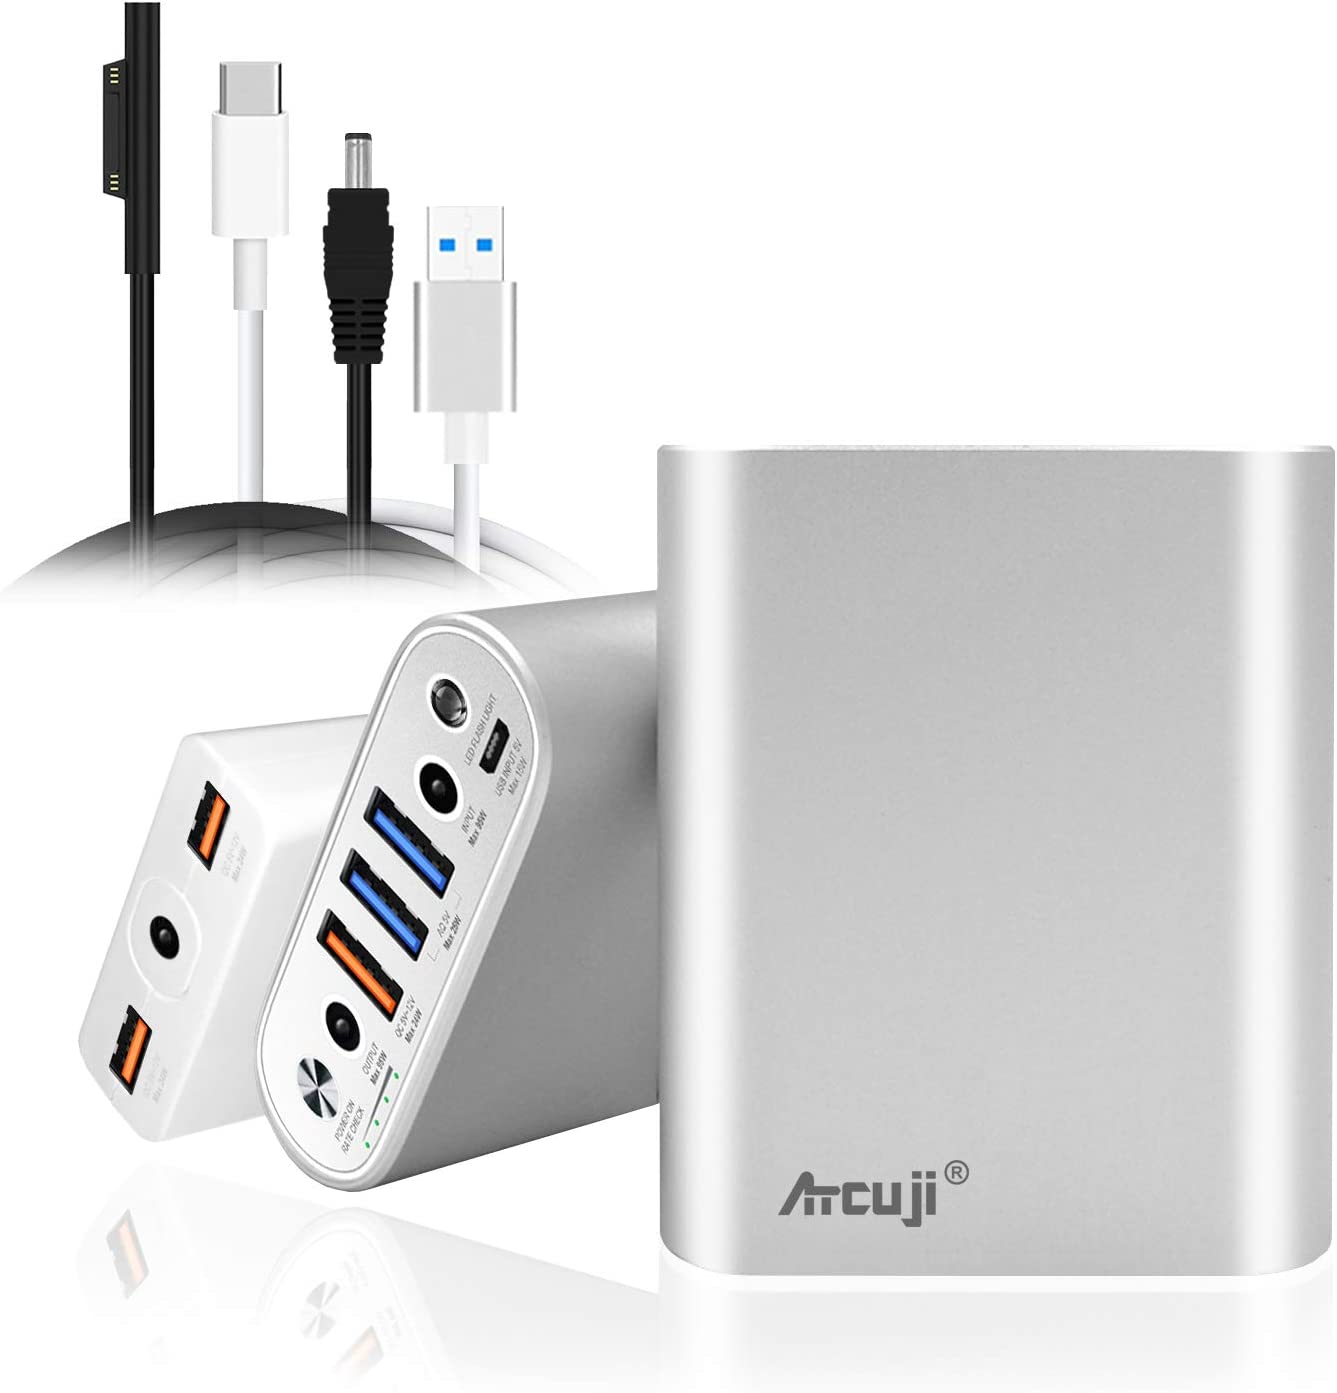 Atcuji 15000mAh Surface Laptop Portable Charger + Slim Adapter 140W Power Delivery for Micorsoft Surface Pro X 7 6 5 4 3 2 Power Bank Surface Book iPhone iPad External Battery Samsung Galaxy Pixel